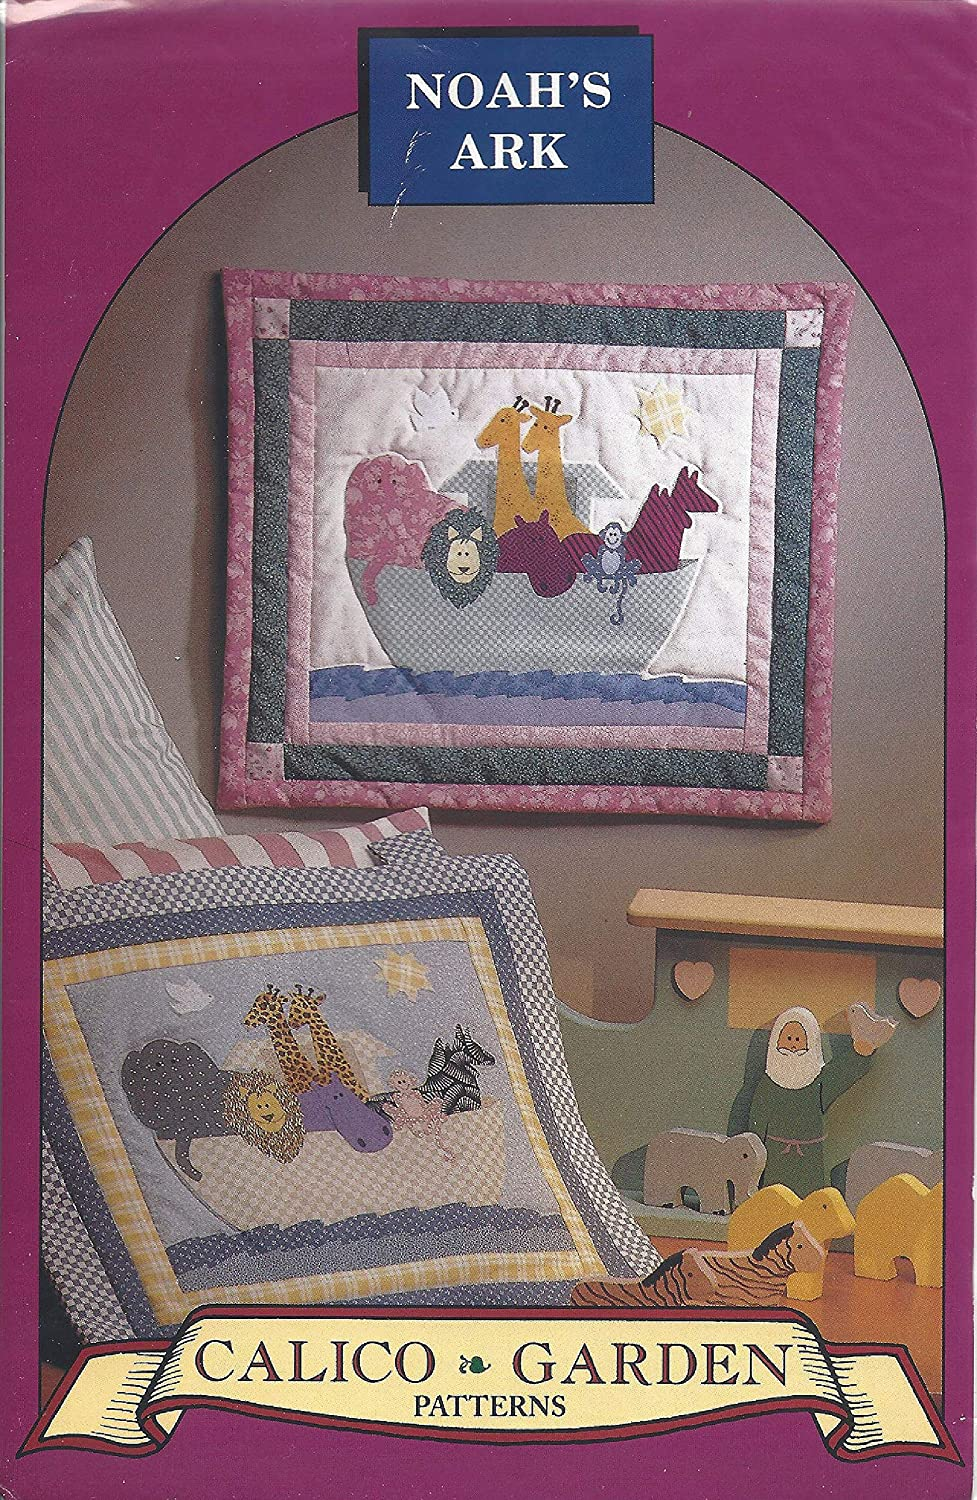 Noahs Ark Wall Hanging Patterns from Calico Garden Designed by Tami Gandre Finished Sizes Pink Quilt 20 x 17 Blue Quilt 19 x 16